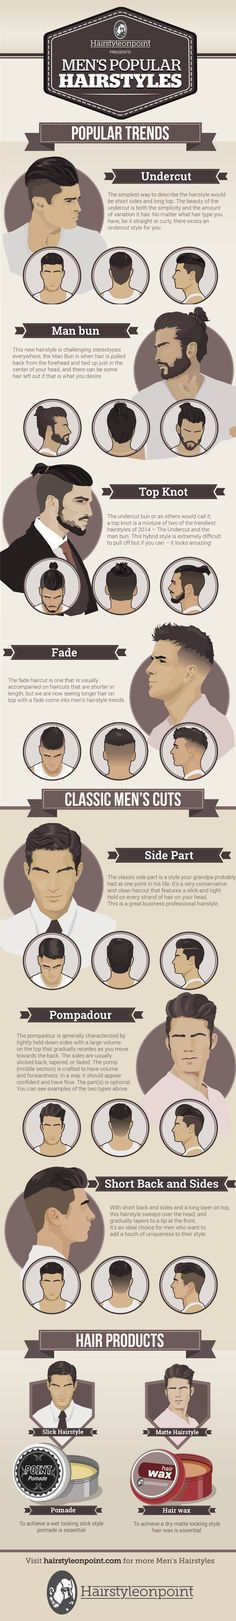 Man Bun Is Probably the Trendiest Hairstyle Now 7 Trendiest Men's Hairstyles – saving this for my son. My infatuation is growing my hair long. Trendy Mens Hairstyles, Trendy Haircuts, 2015 Hairstyles, Haircuts For Men, Popular Hairstyles, Men's Haircuts, Haircut Men, Fade Haircut, Short Hairstyles